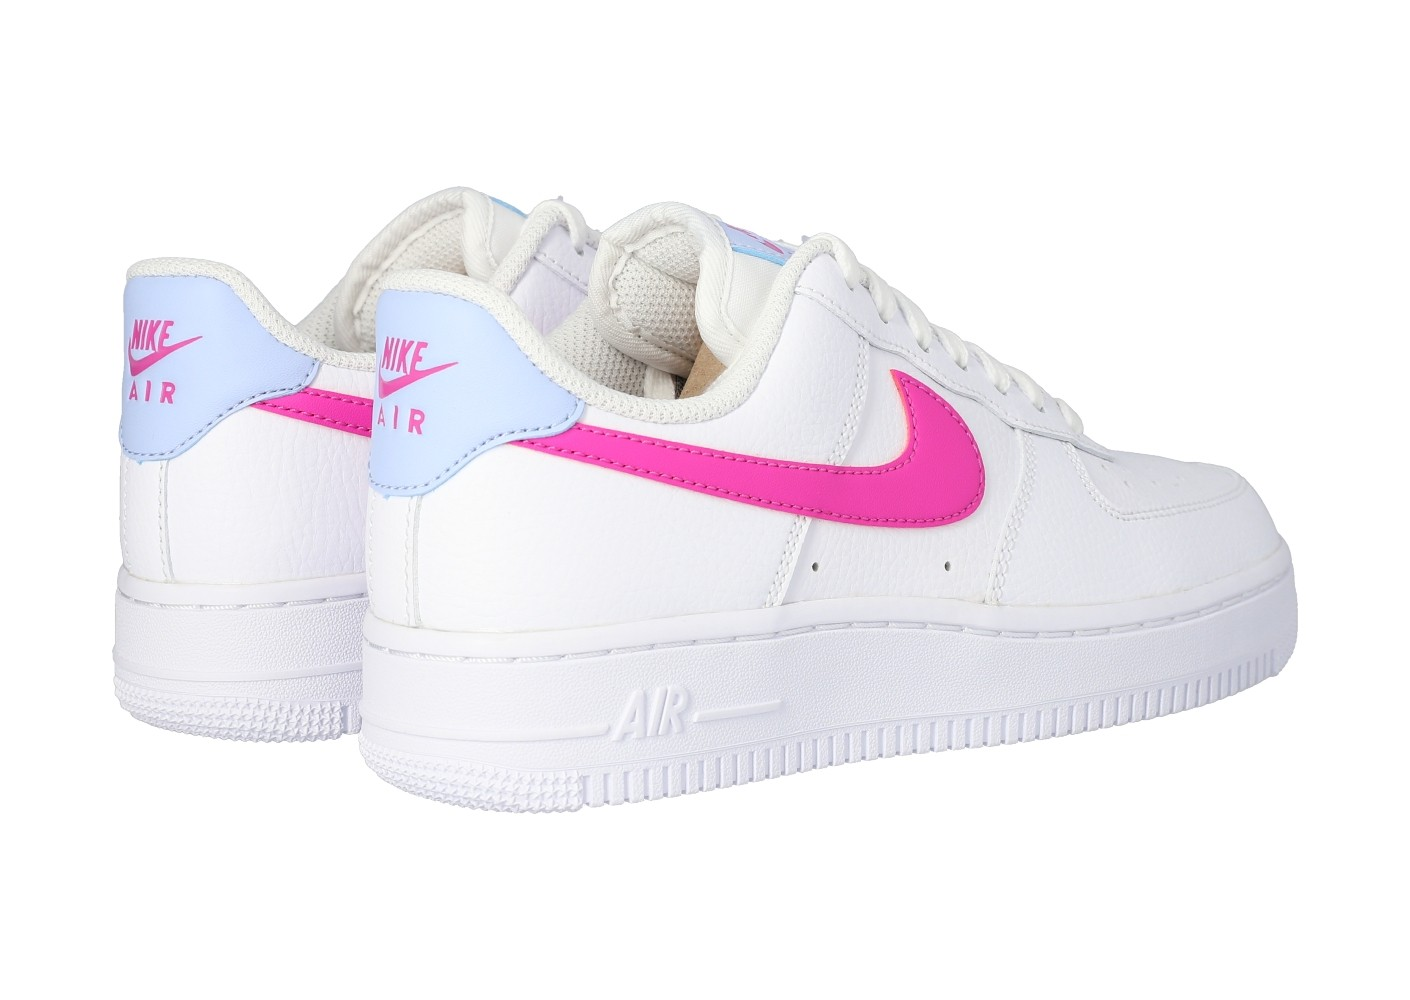 Nike Air Force 1 '07 blanche rose et bleue - Chaussures Baskets ...